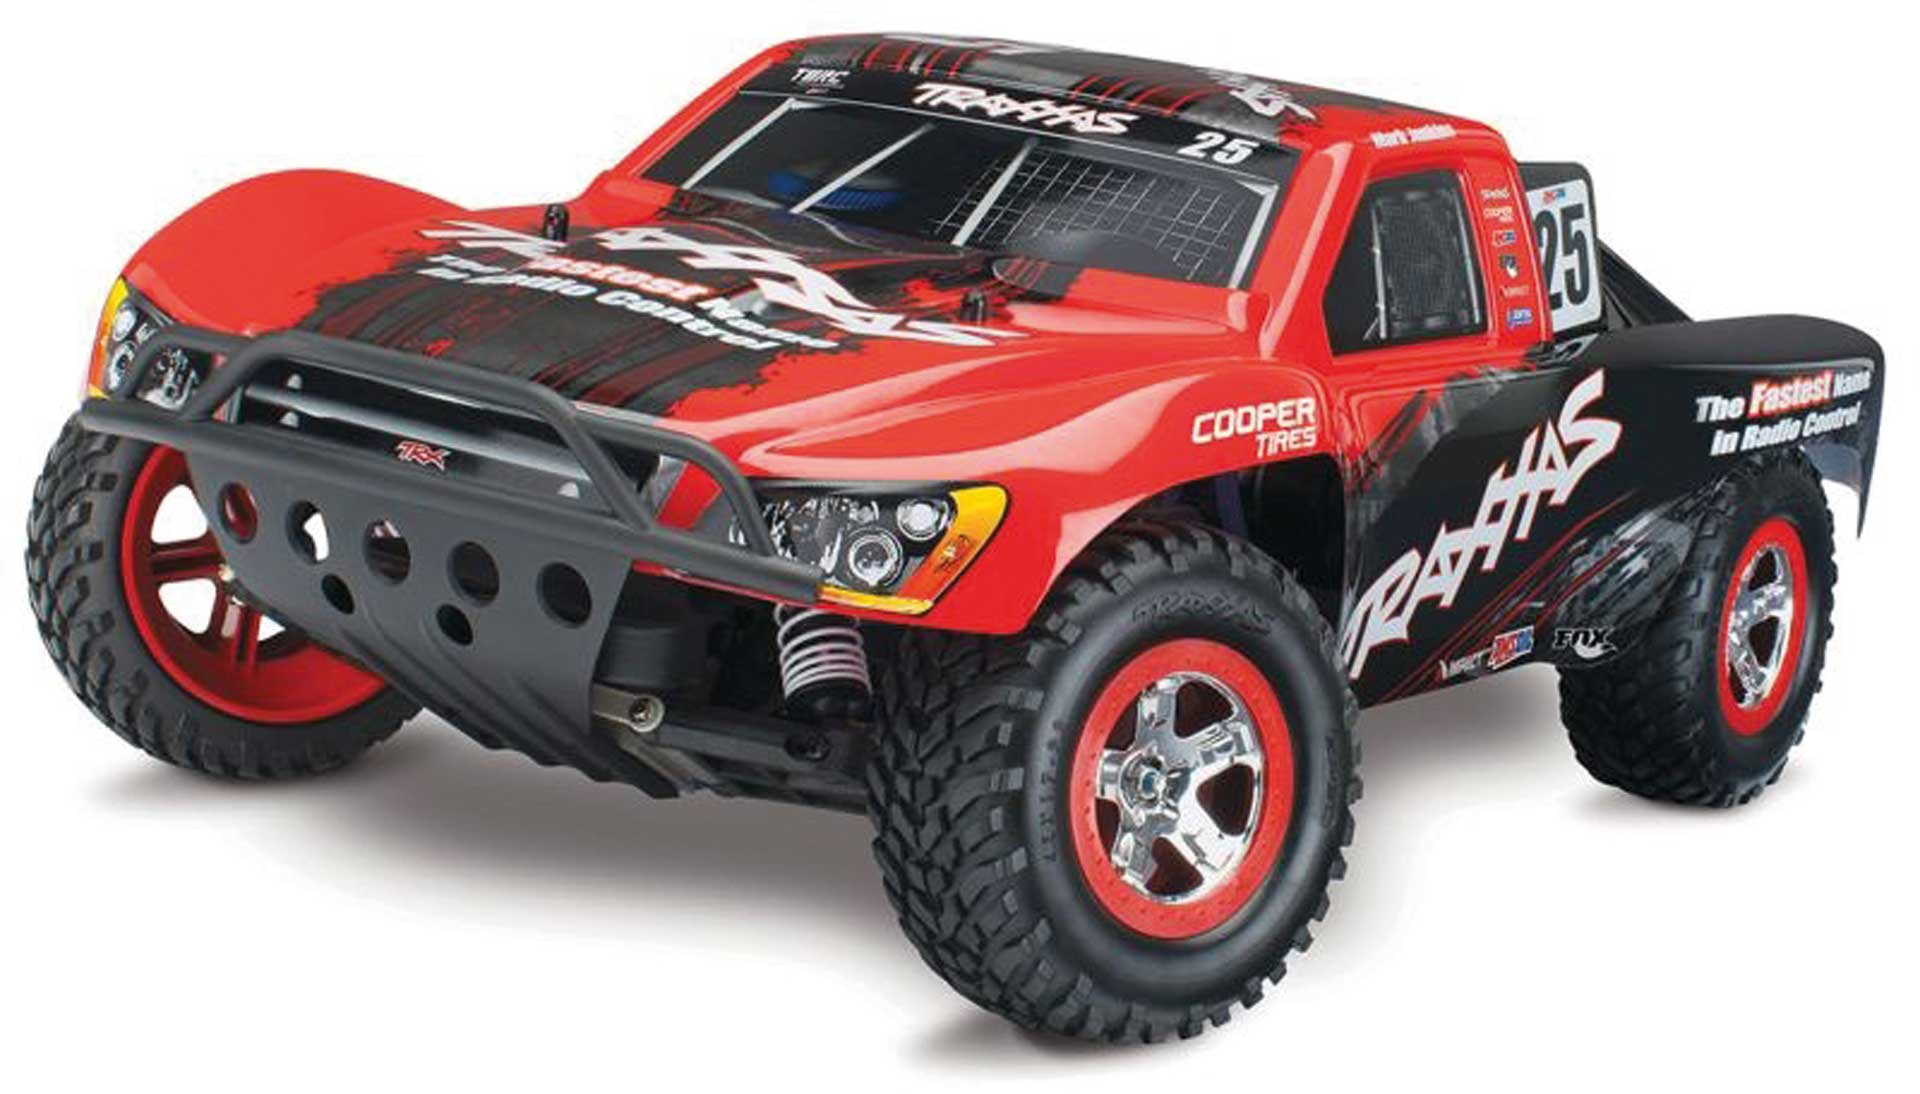 TRAXXAS NITRO-SLASH RTR 1/10 2.4GHZ MARK JENKINS EDITION SHO RT COURSE RACING VERBRENNER-TRUCK 2WD (L